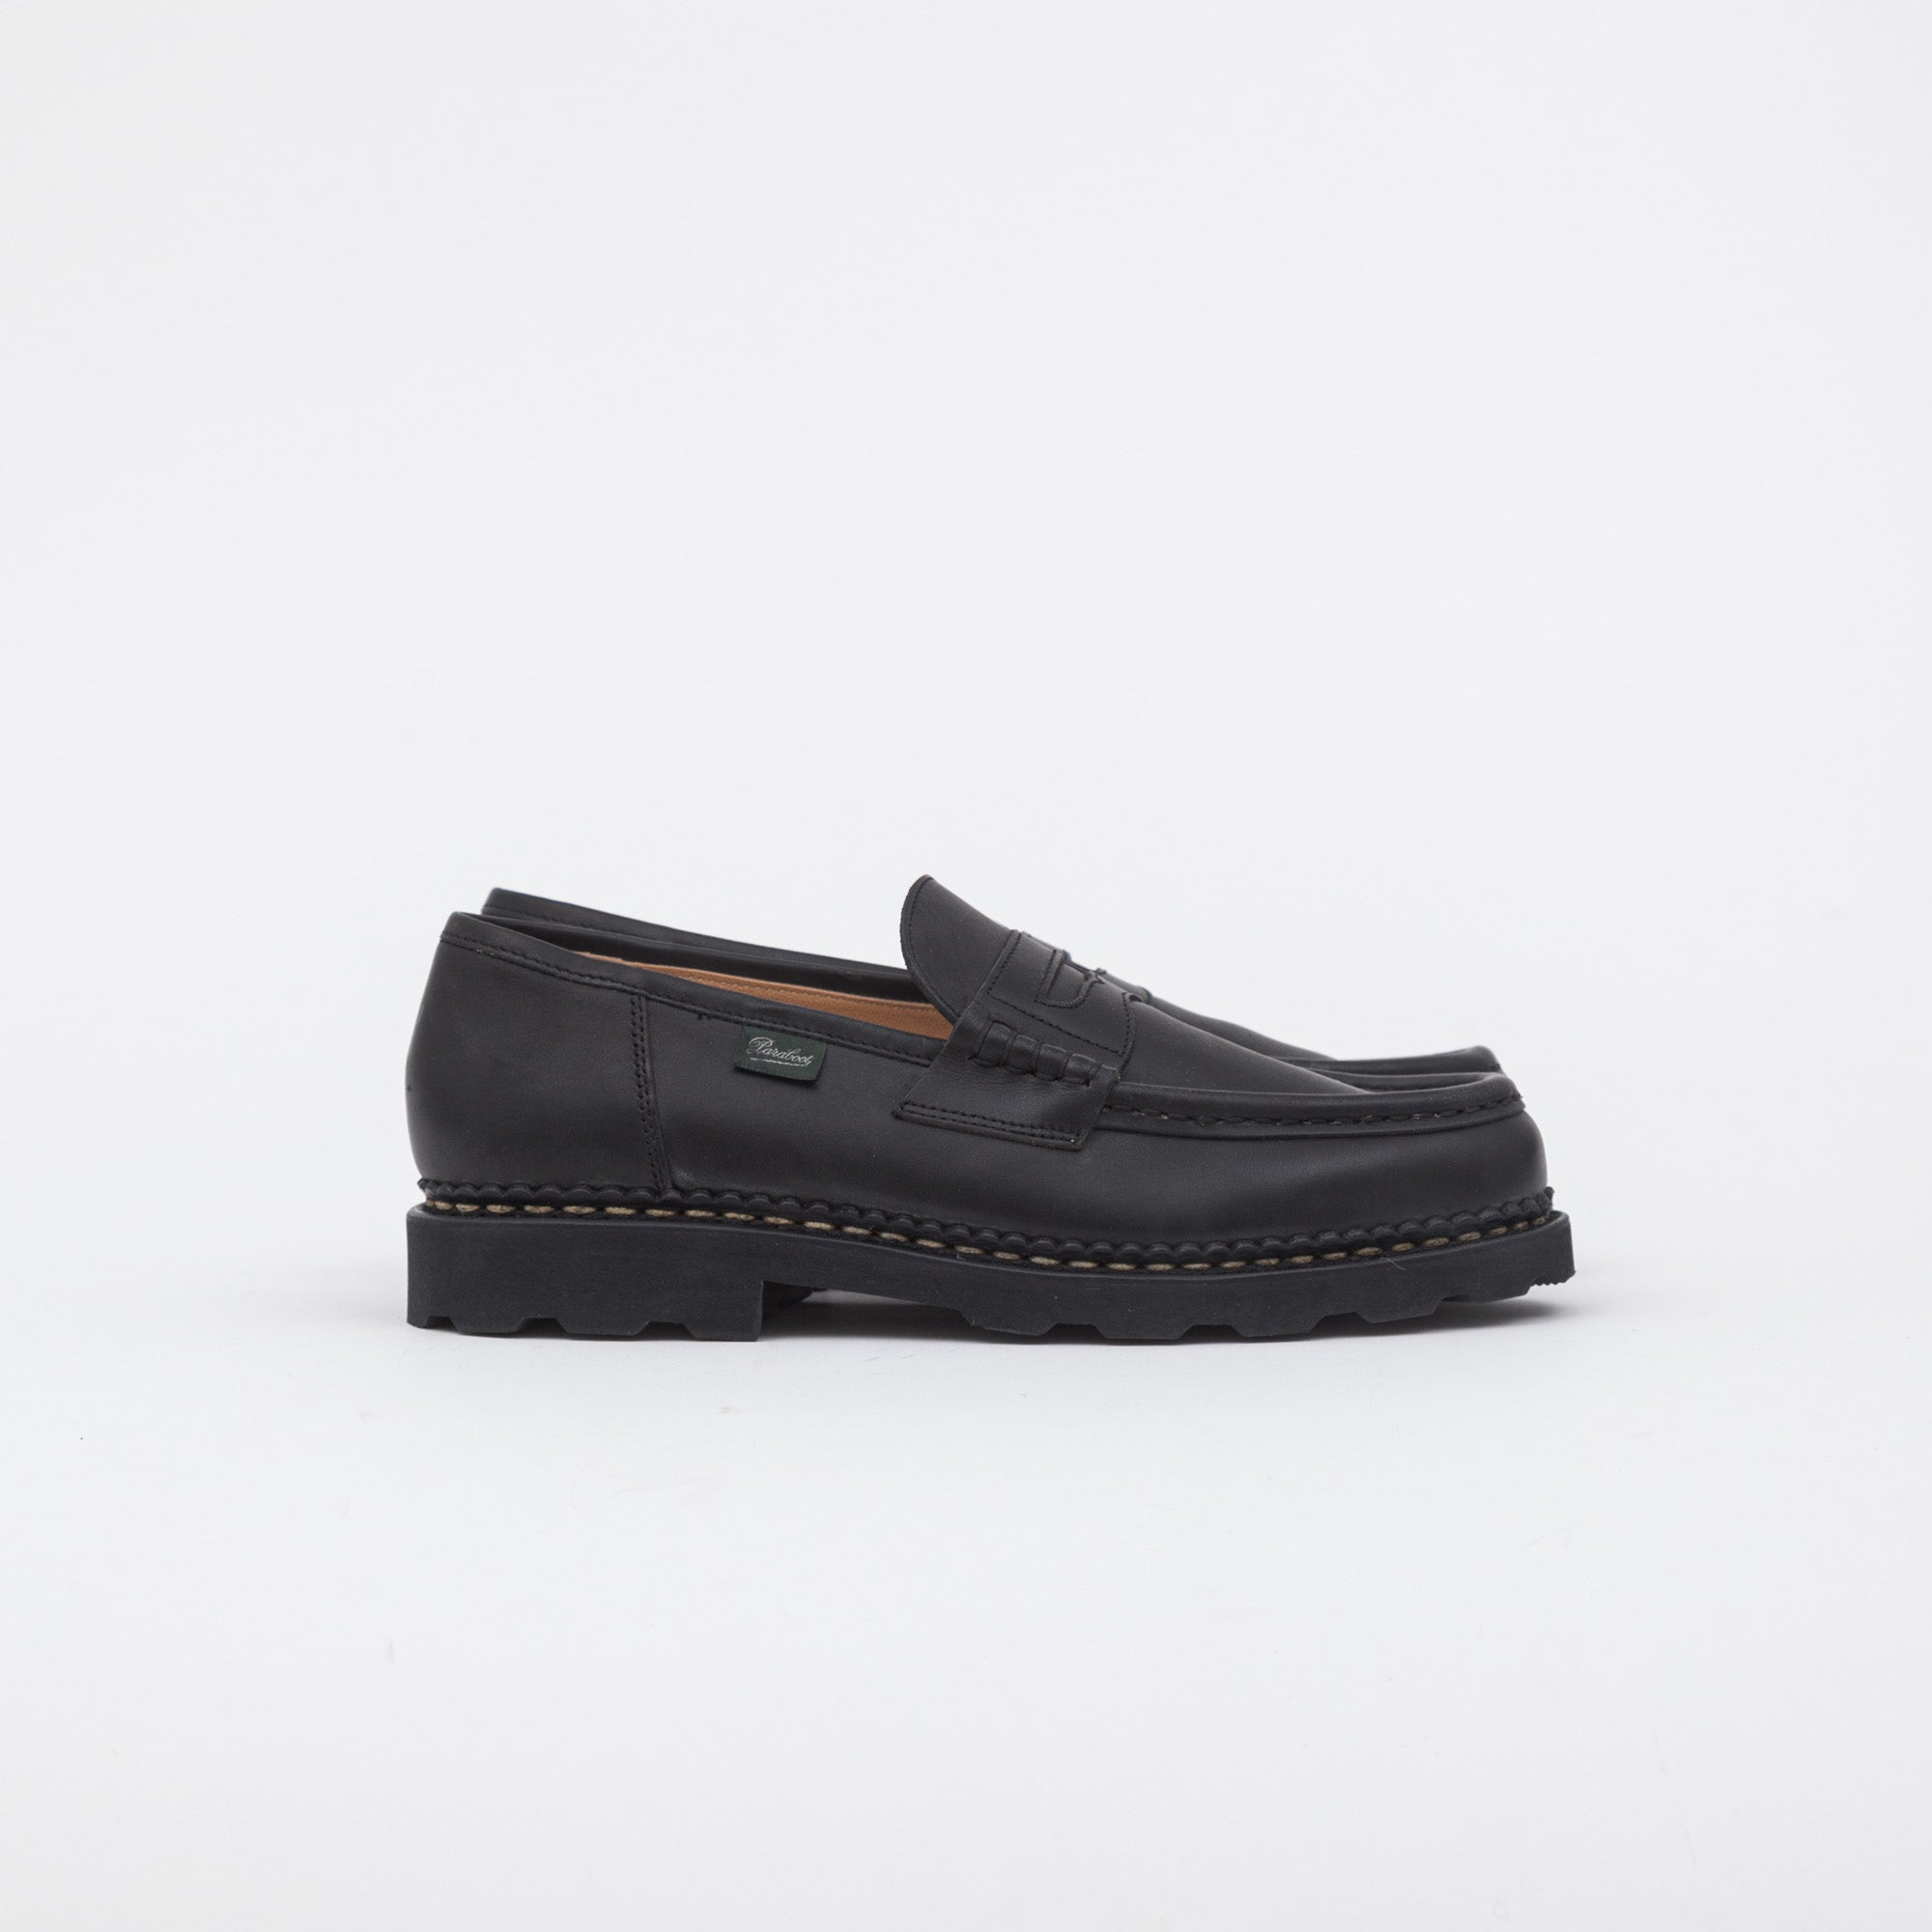 Paraboot Reims Loafer